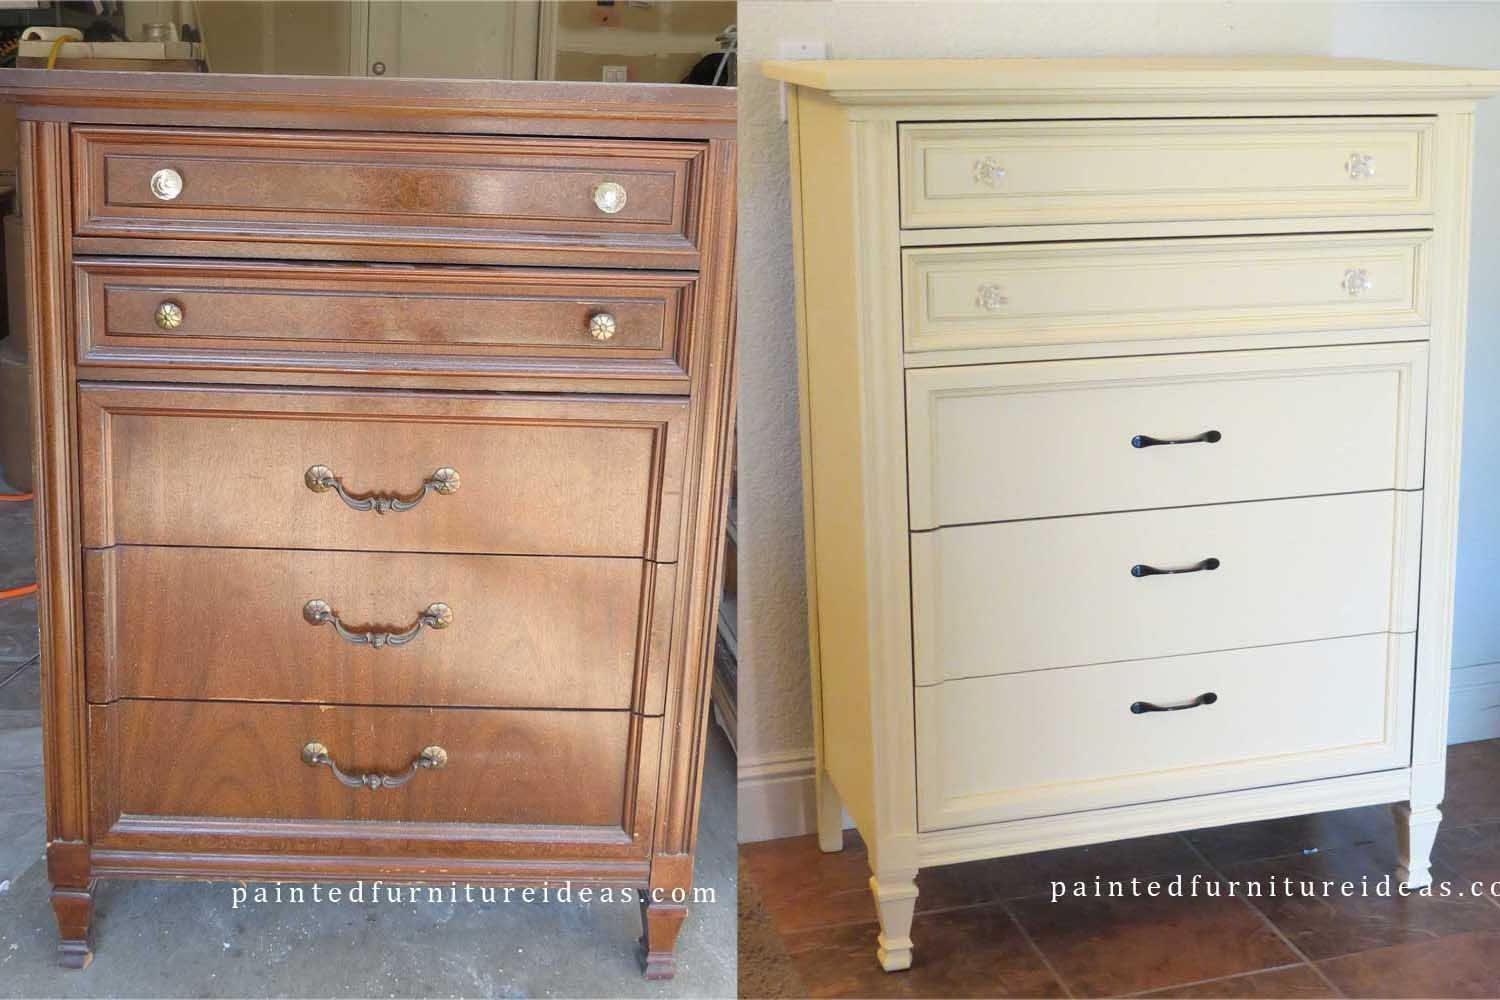 Dixie Dresser Refinished In Light Yellow Painted Furniture Ideas Refinish Projects